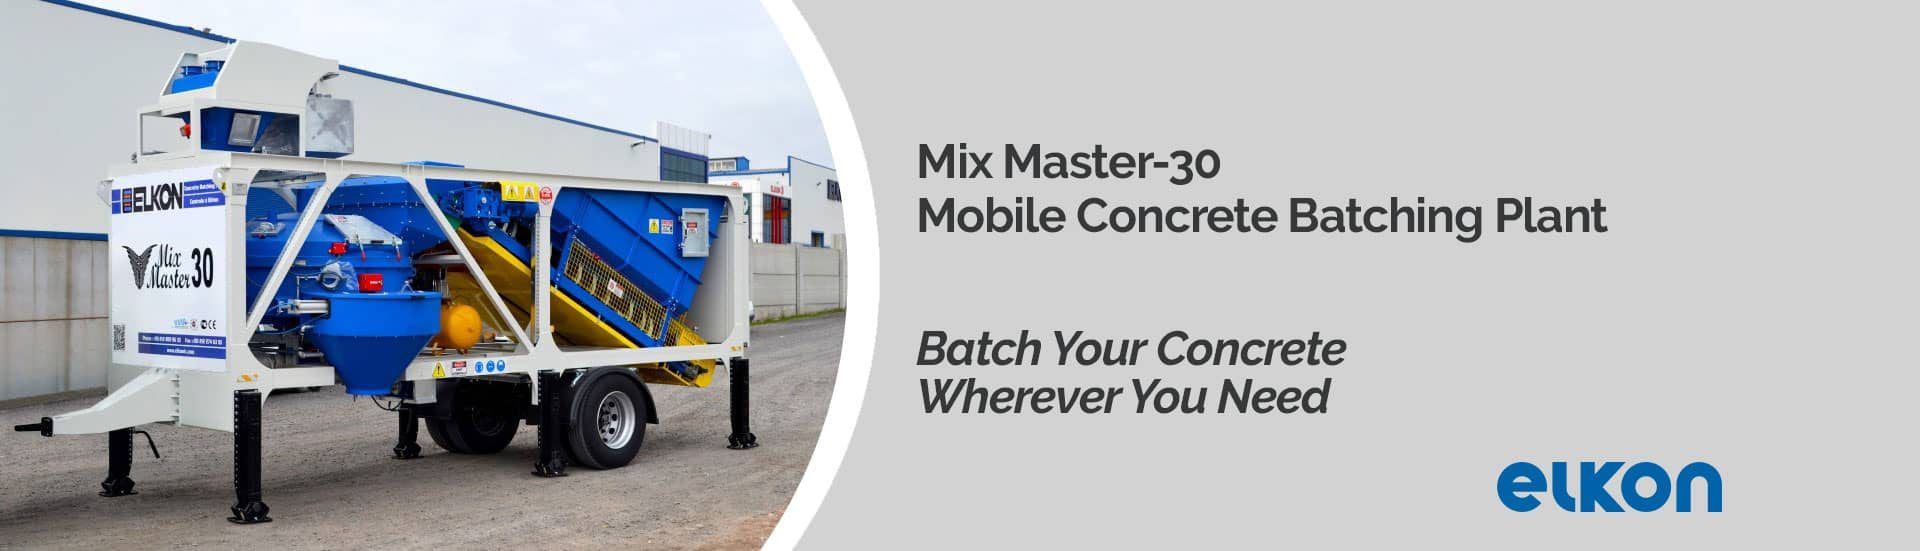 Mix Master-30 - Mobile Concrete Batching Plant